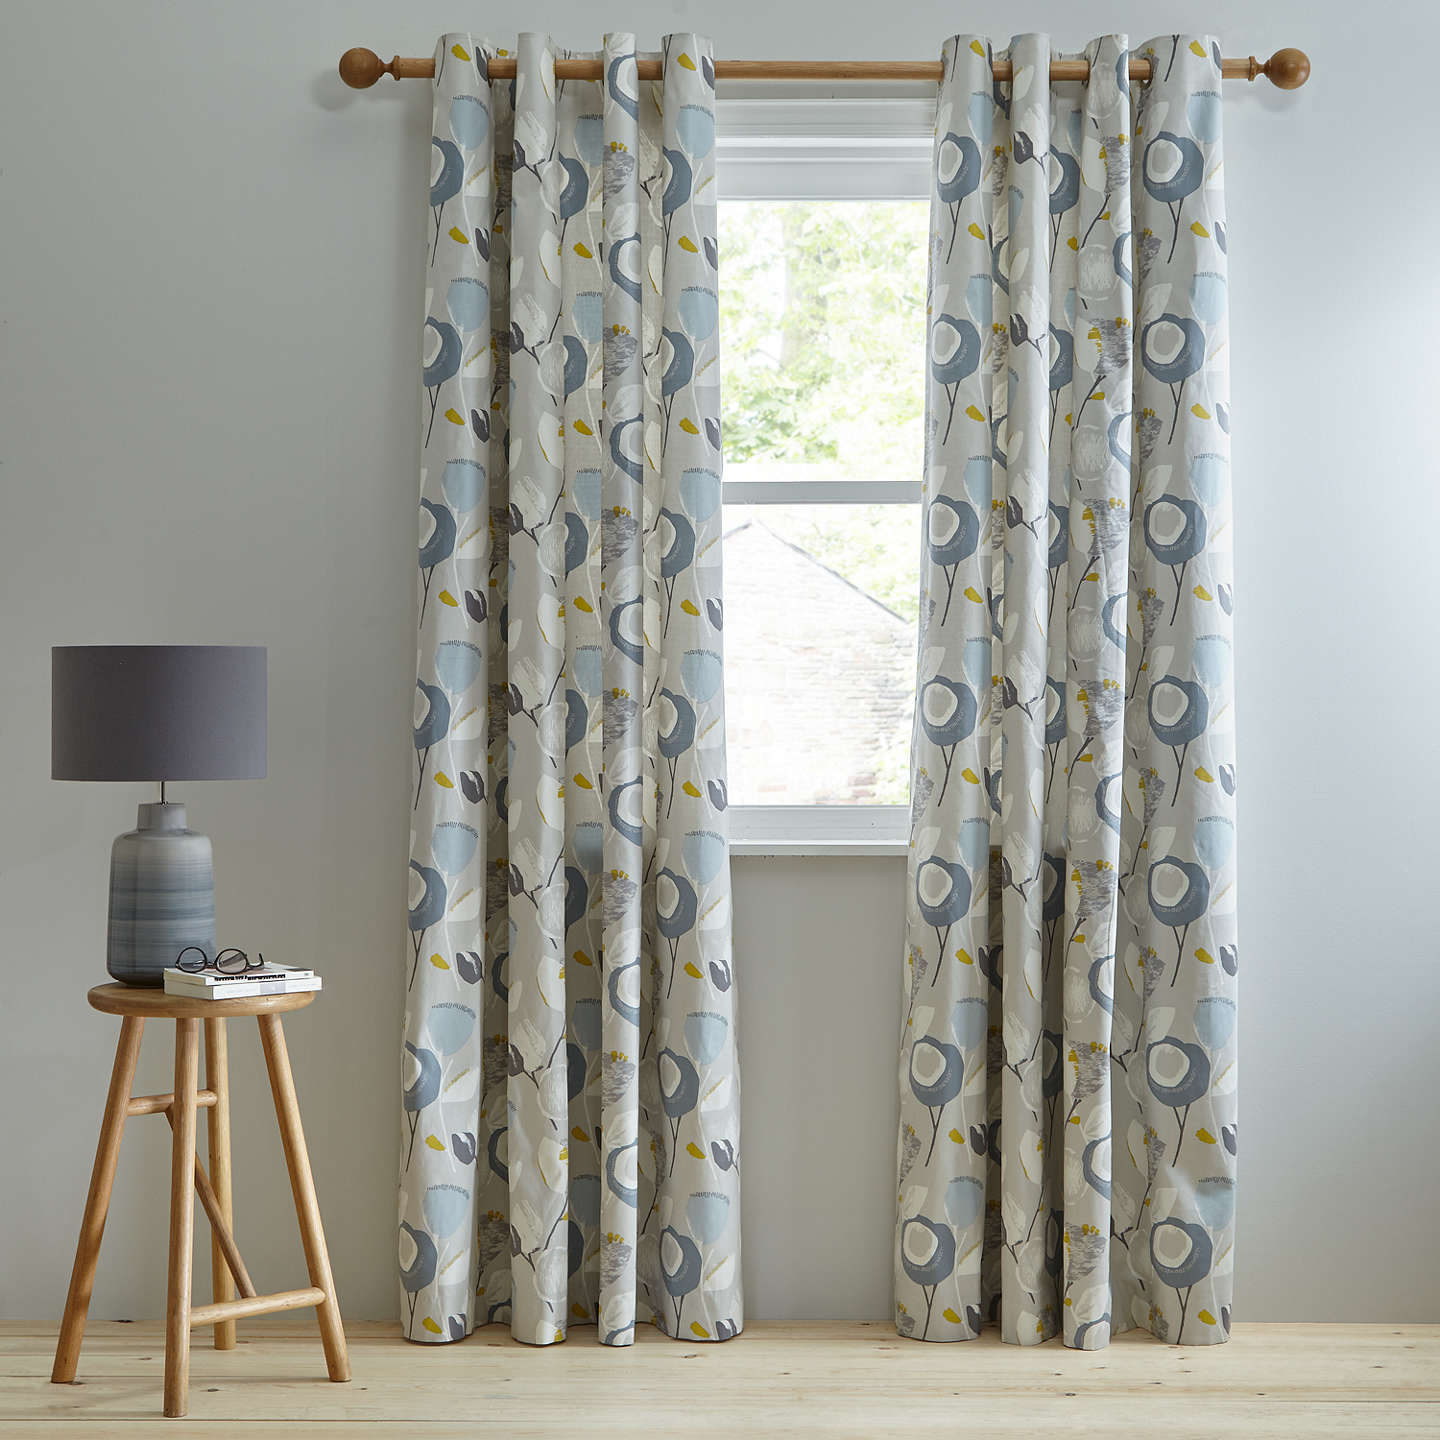 milton blinds curtain freedom slate blockout eyelet curtains